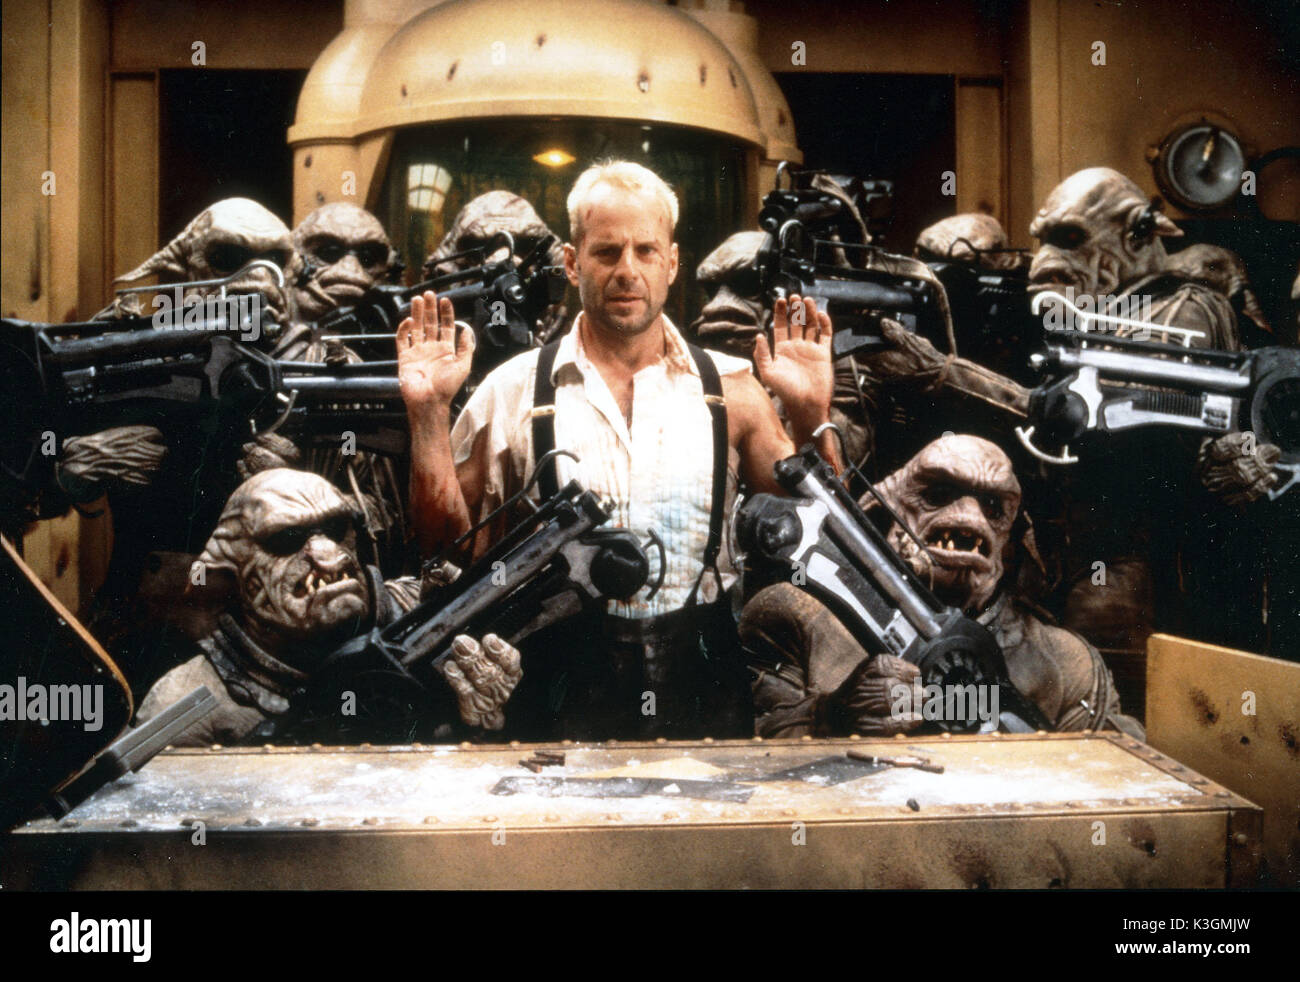 THE FIFTH ELEMENT aka LE CINQUIEME ELEMENT BRUCE WILLIS PUBLICITY SHOT: THIS SCENE IS NOT IN THE FILM     Date: 1995 - Stock Image